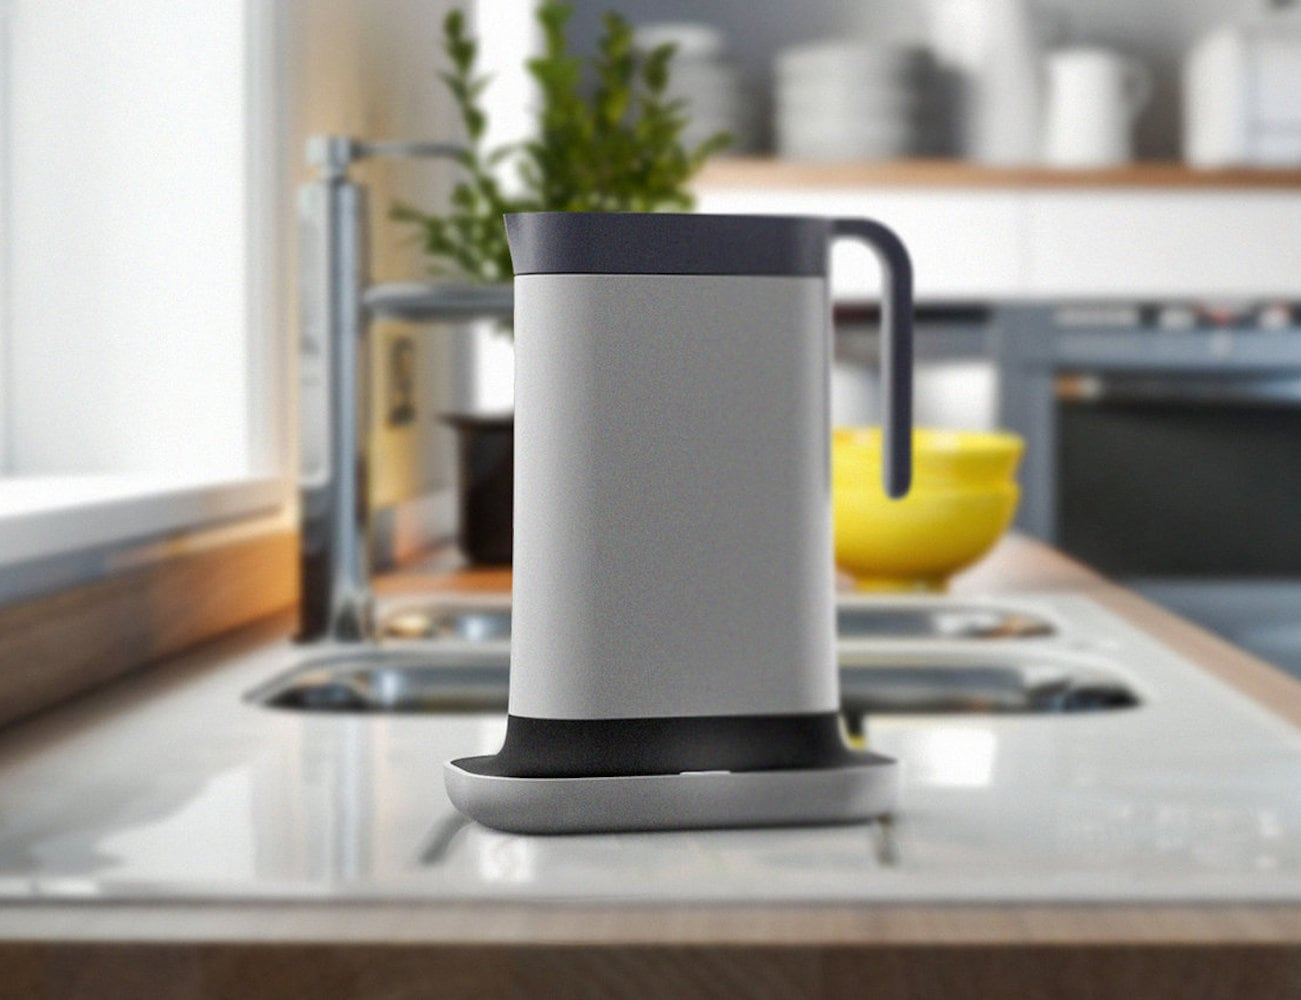 Ferv Thermally Insulated Kettle is a time-saving way to boil water